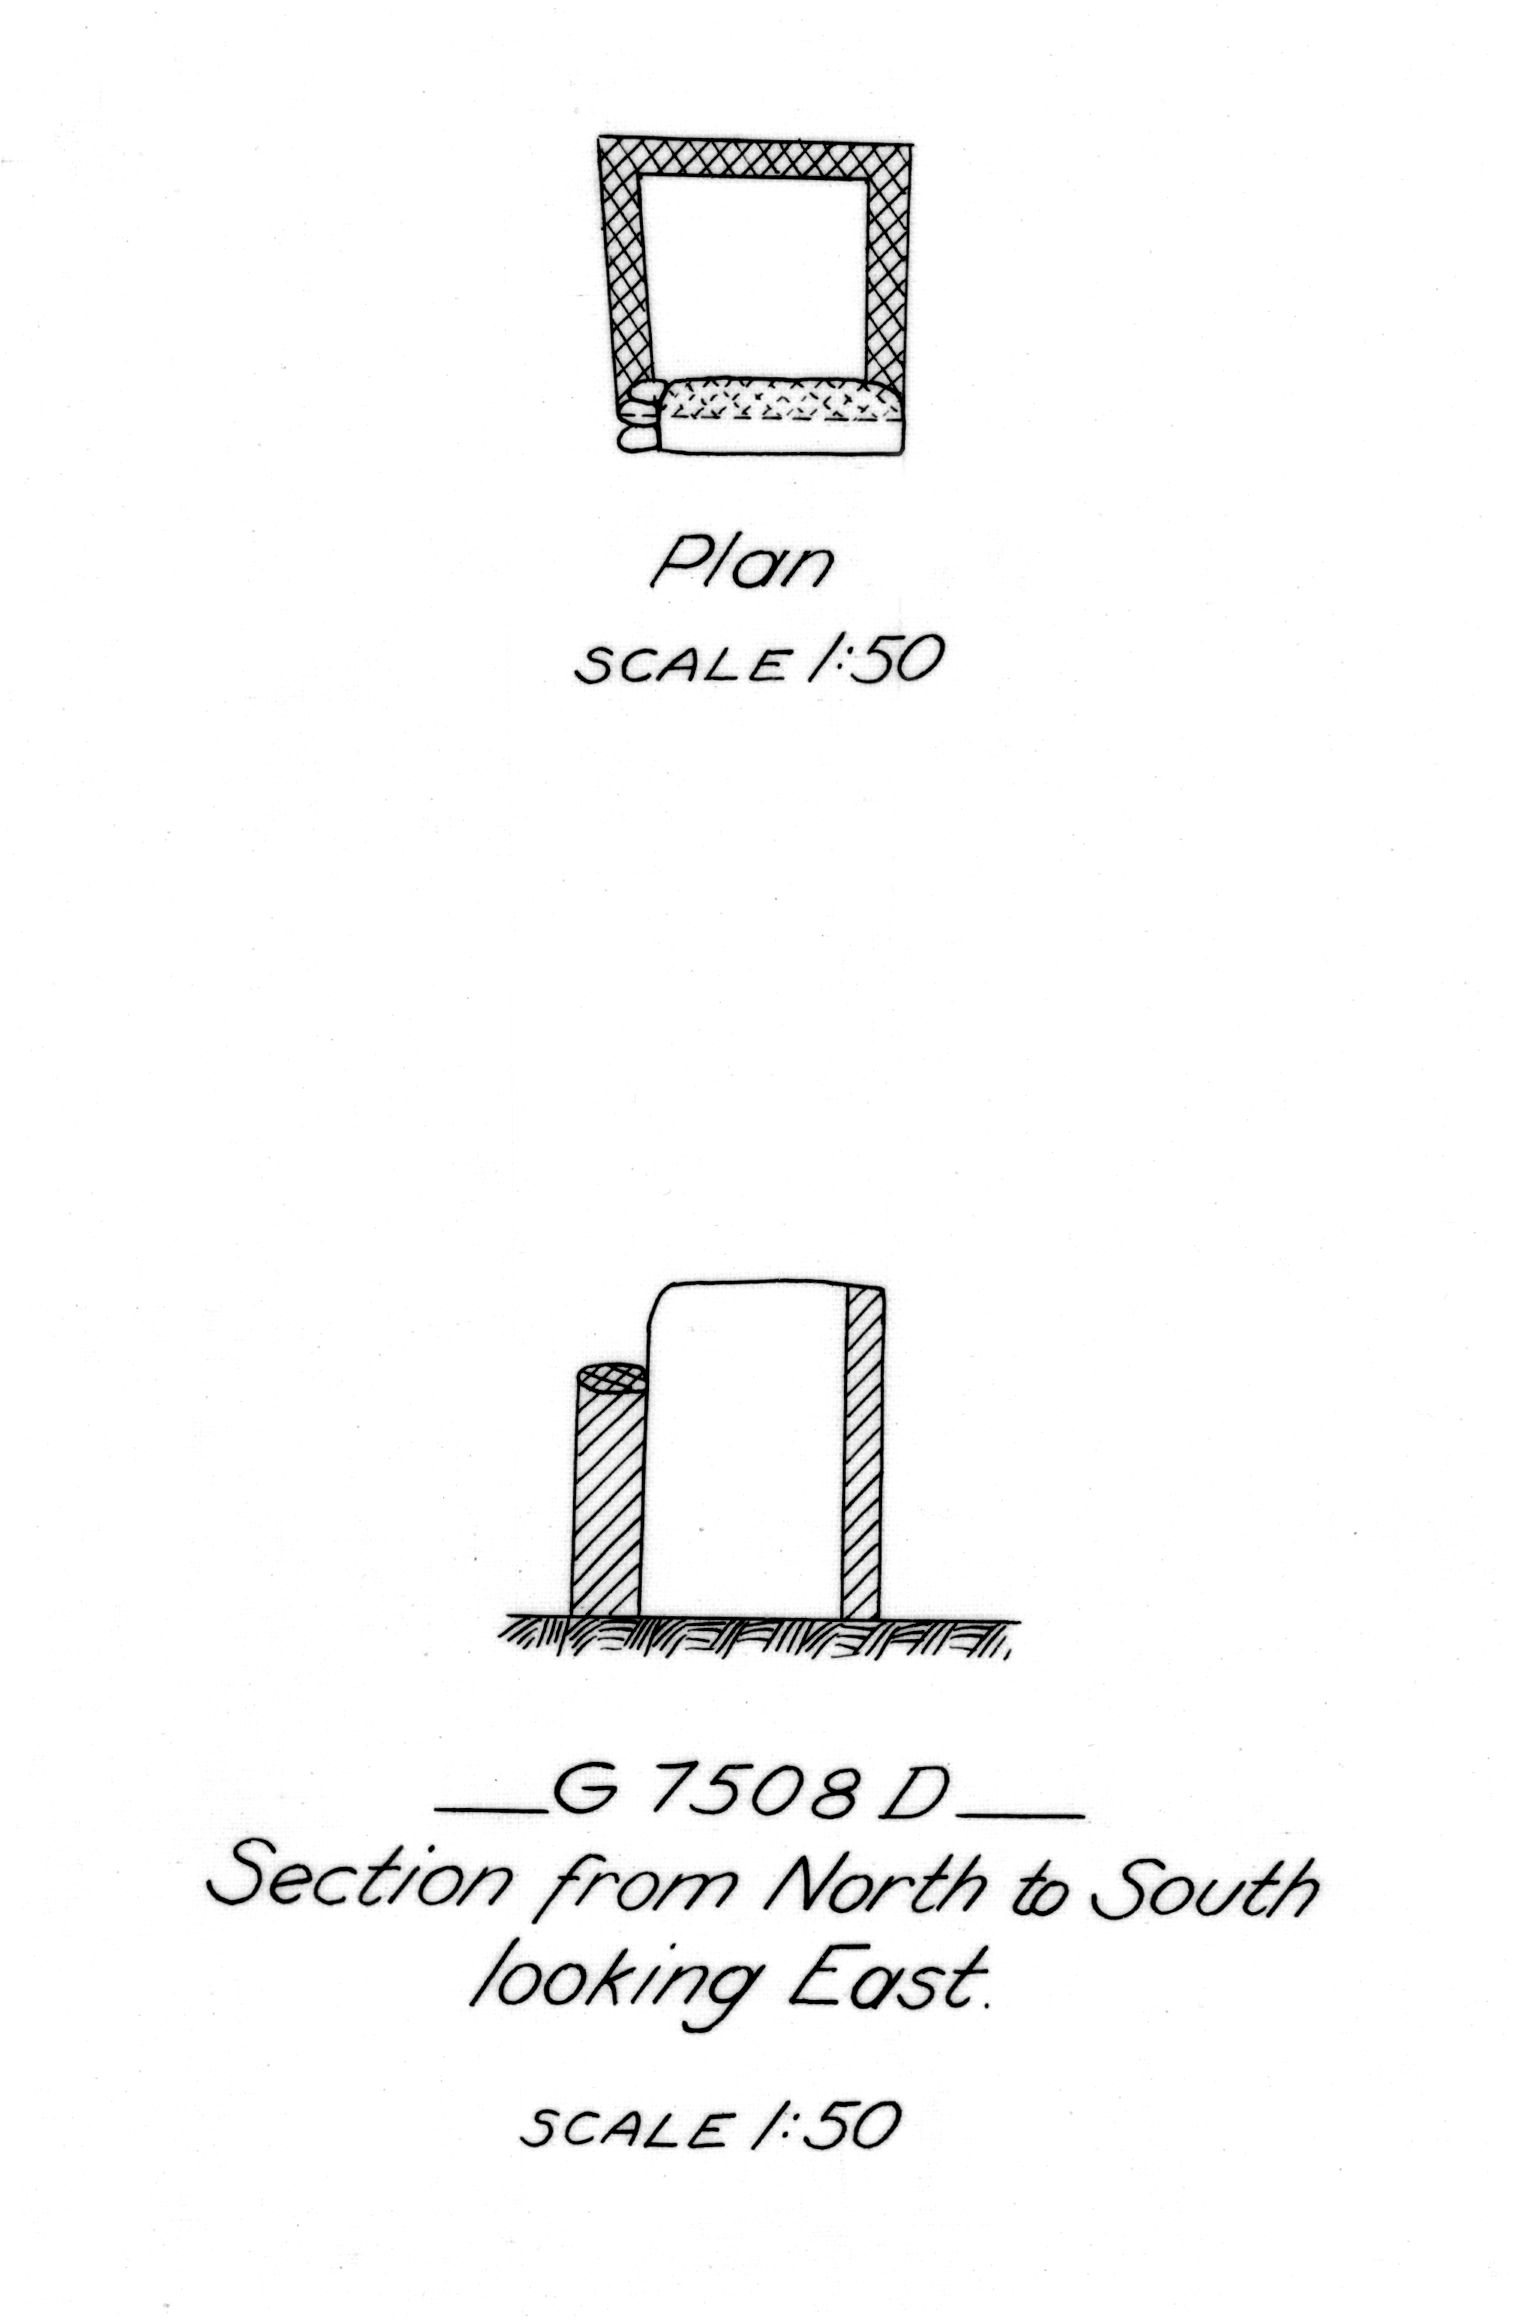 Maps and plans: G 7508, Shaft D